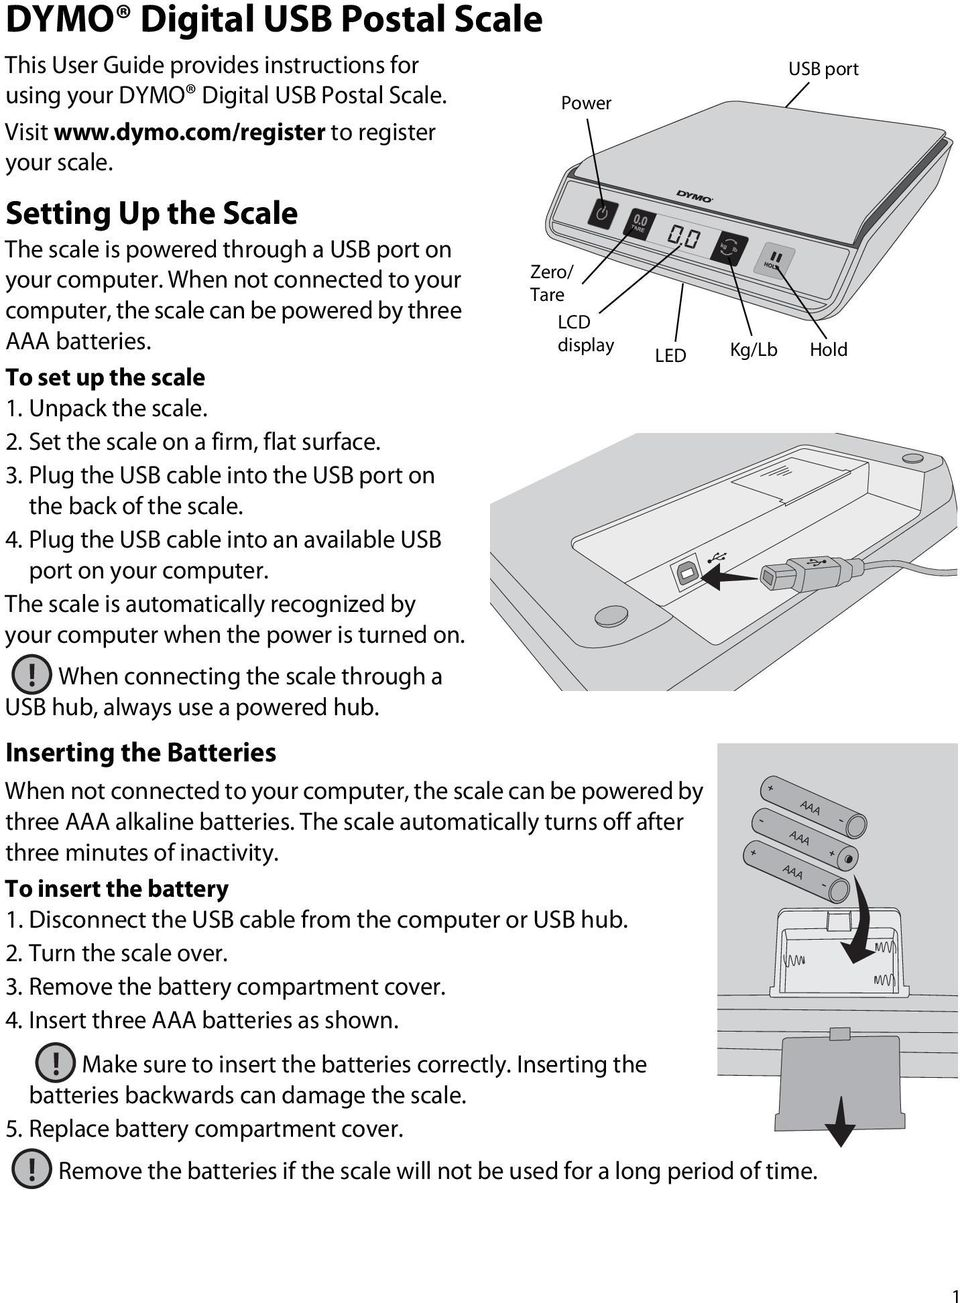 Unpack the scale. 2. Set the scale on a firm, flat surface. 3. Plug the USB cable into the USB port on the back of the scale. 4. Plug the USB cable into an available USB port on your computer.